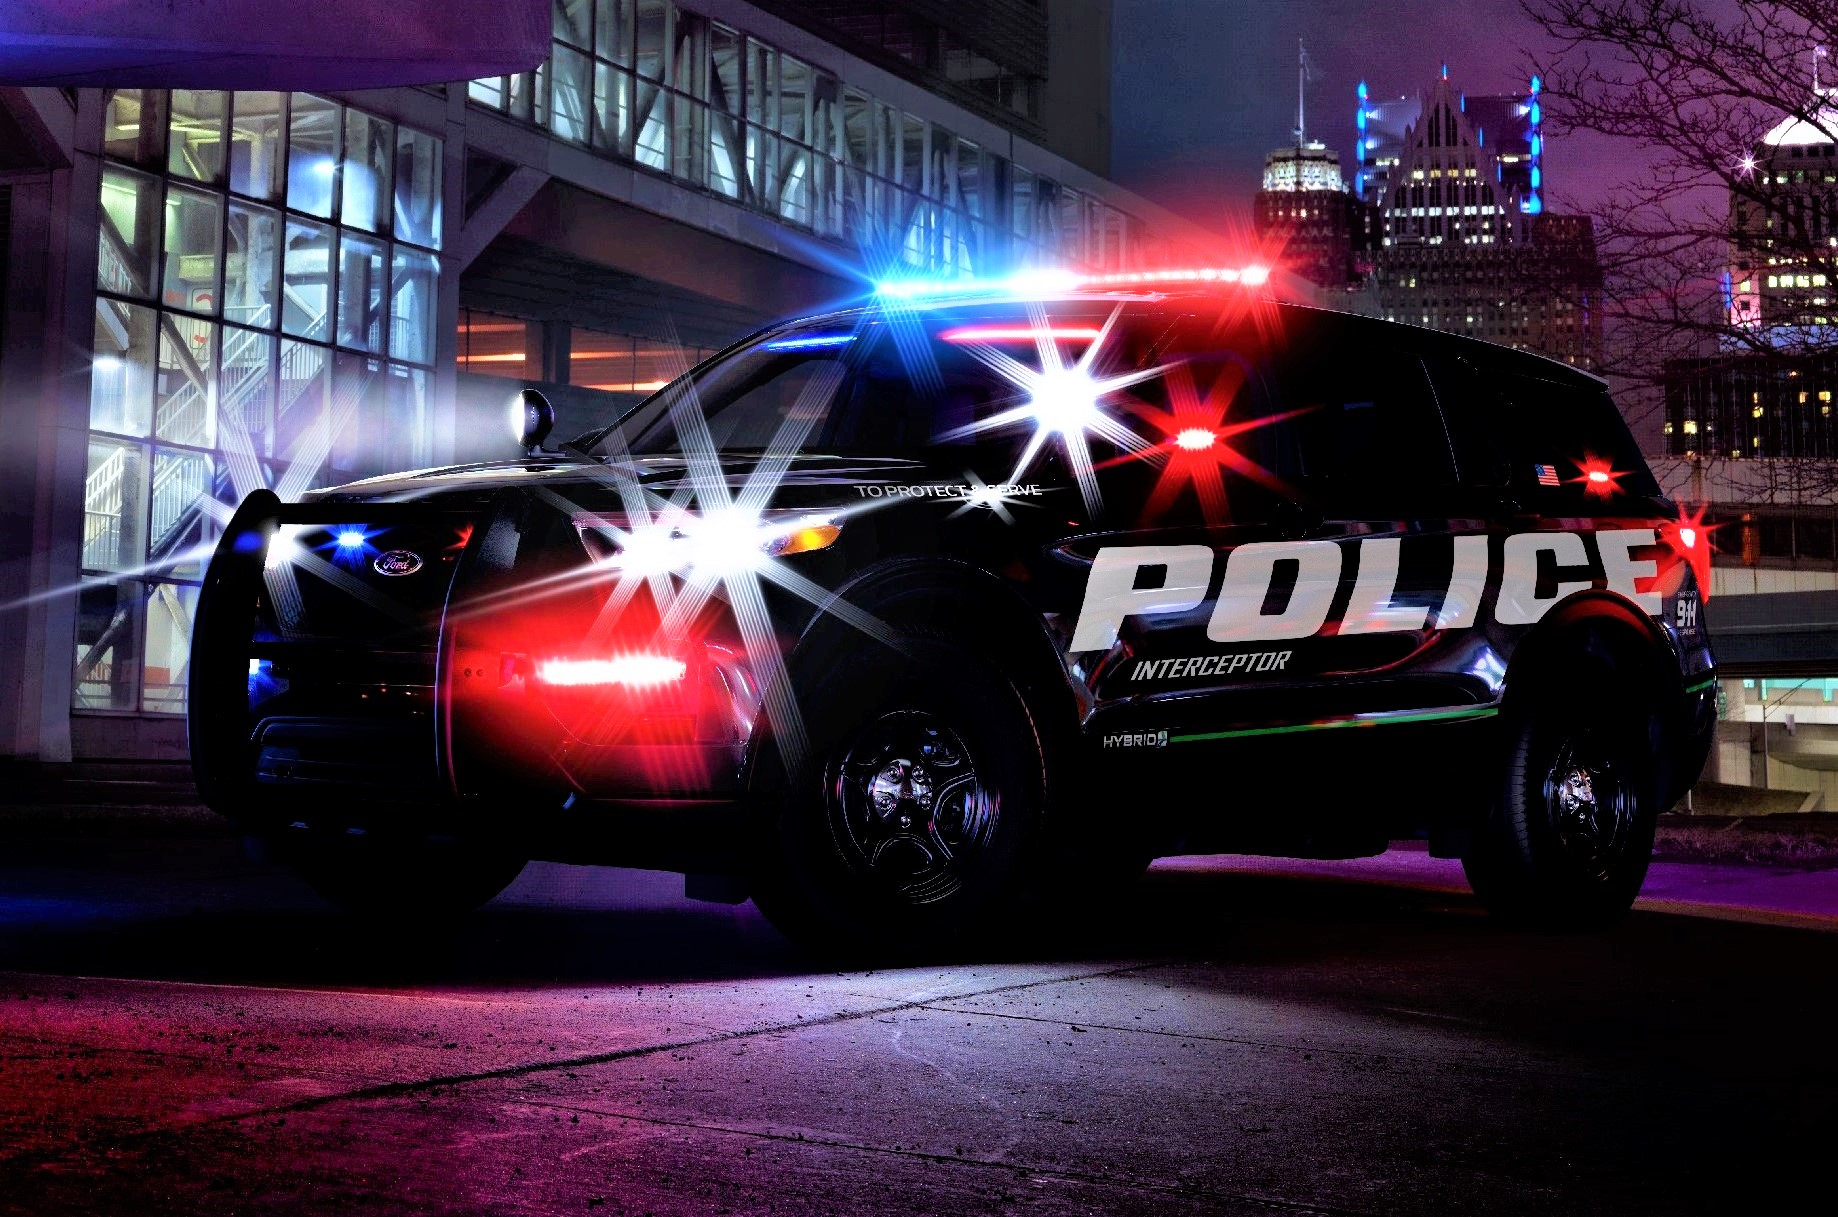 ford expands hybrid lineup with taxi, police suv wardsauto auto wire harness the fusion hybrid taxi shares parts such as heavy duty wheels with the ford police responder hybrid for improved durability it includes a police tuned